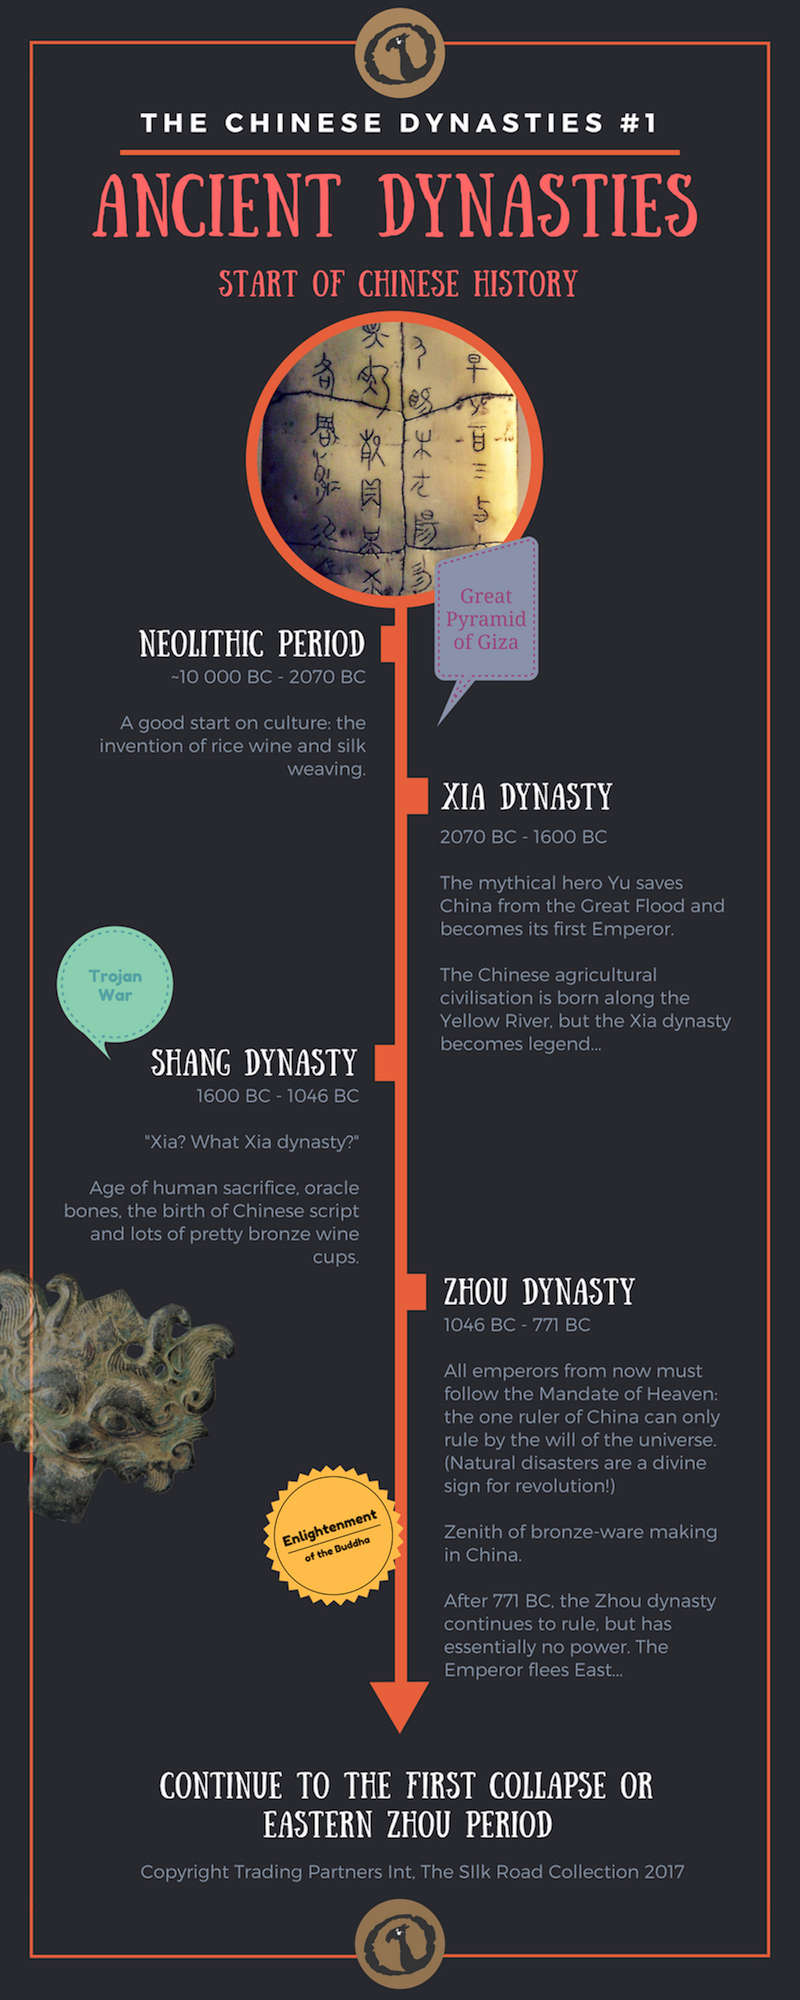 Timeline image of The Chinese Dynasties: Start of Chinese history